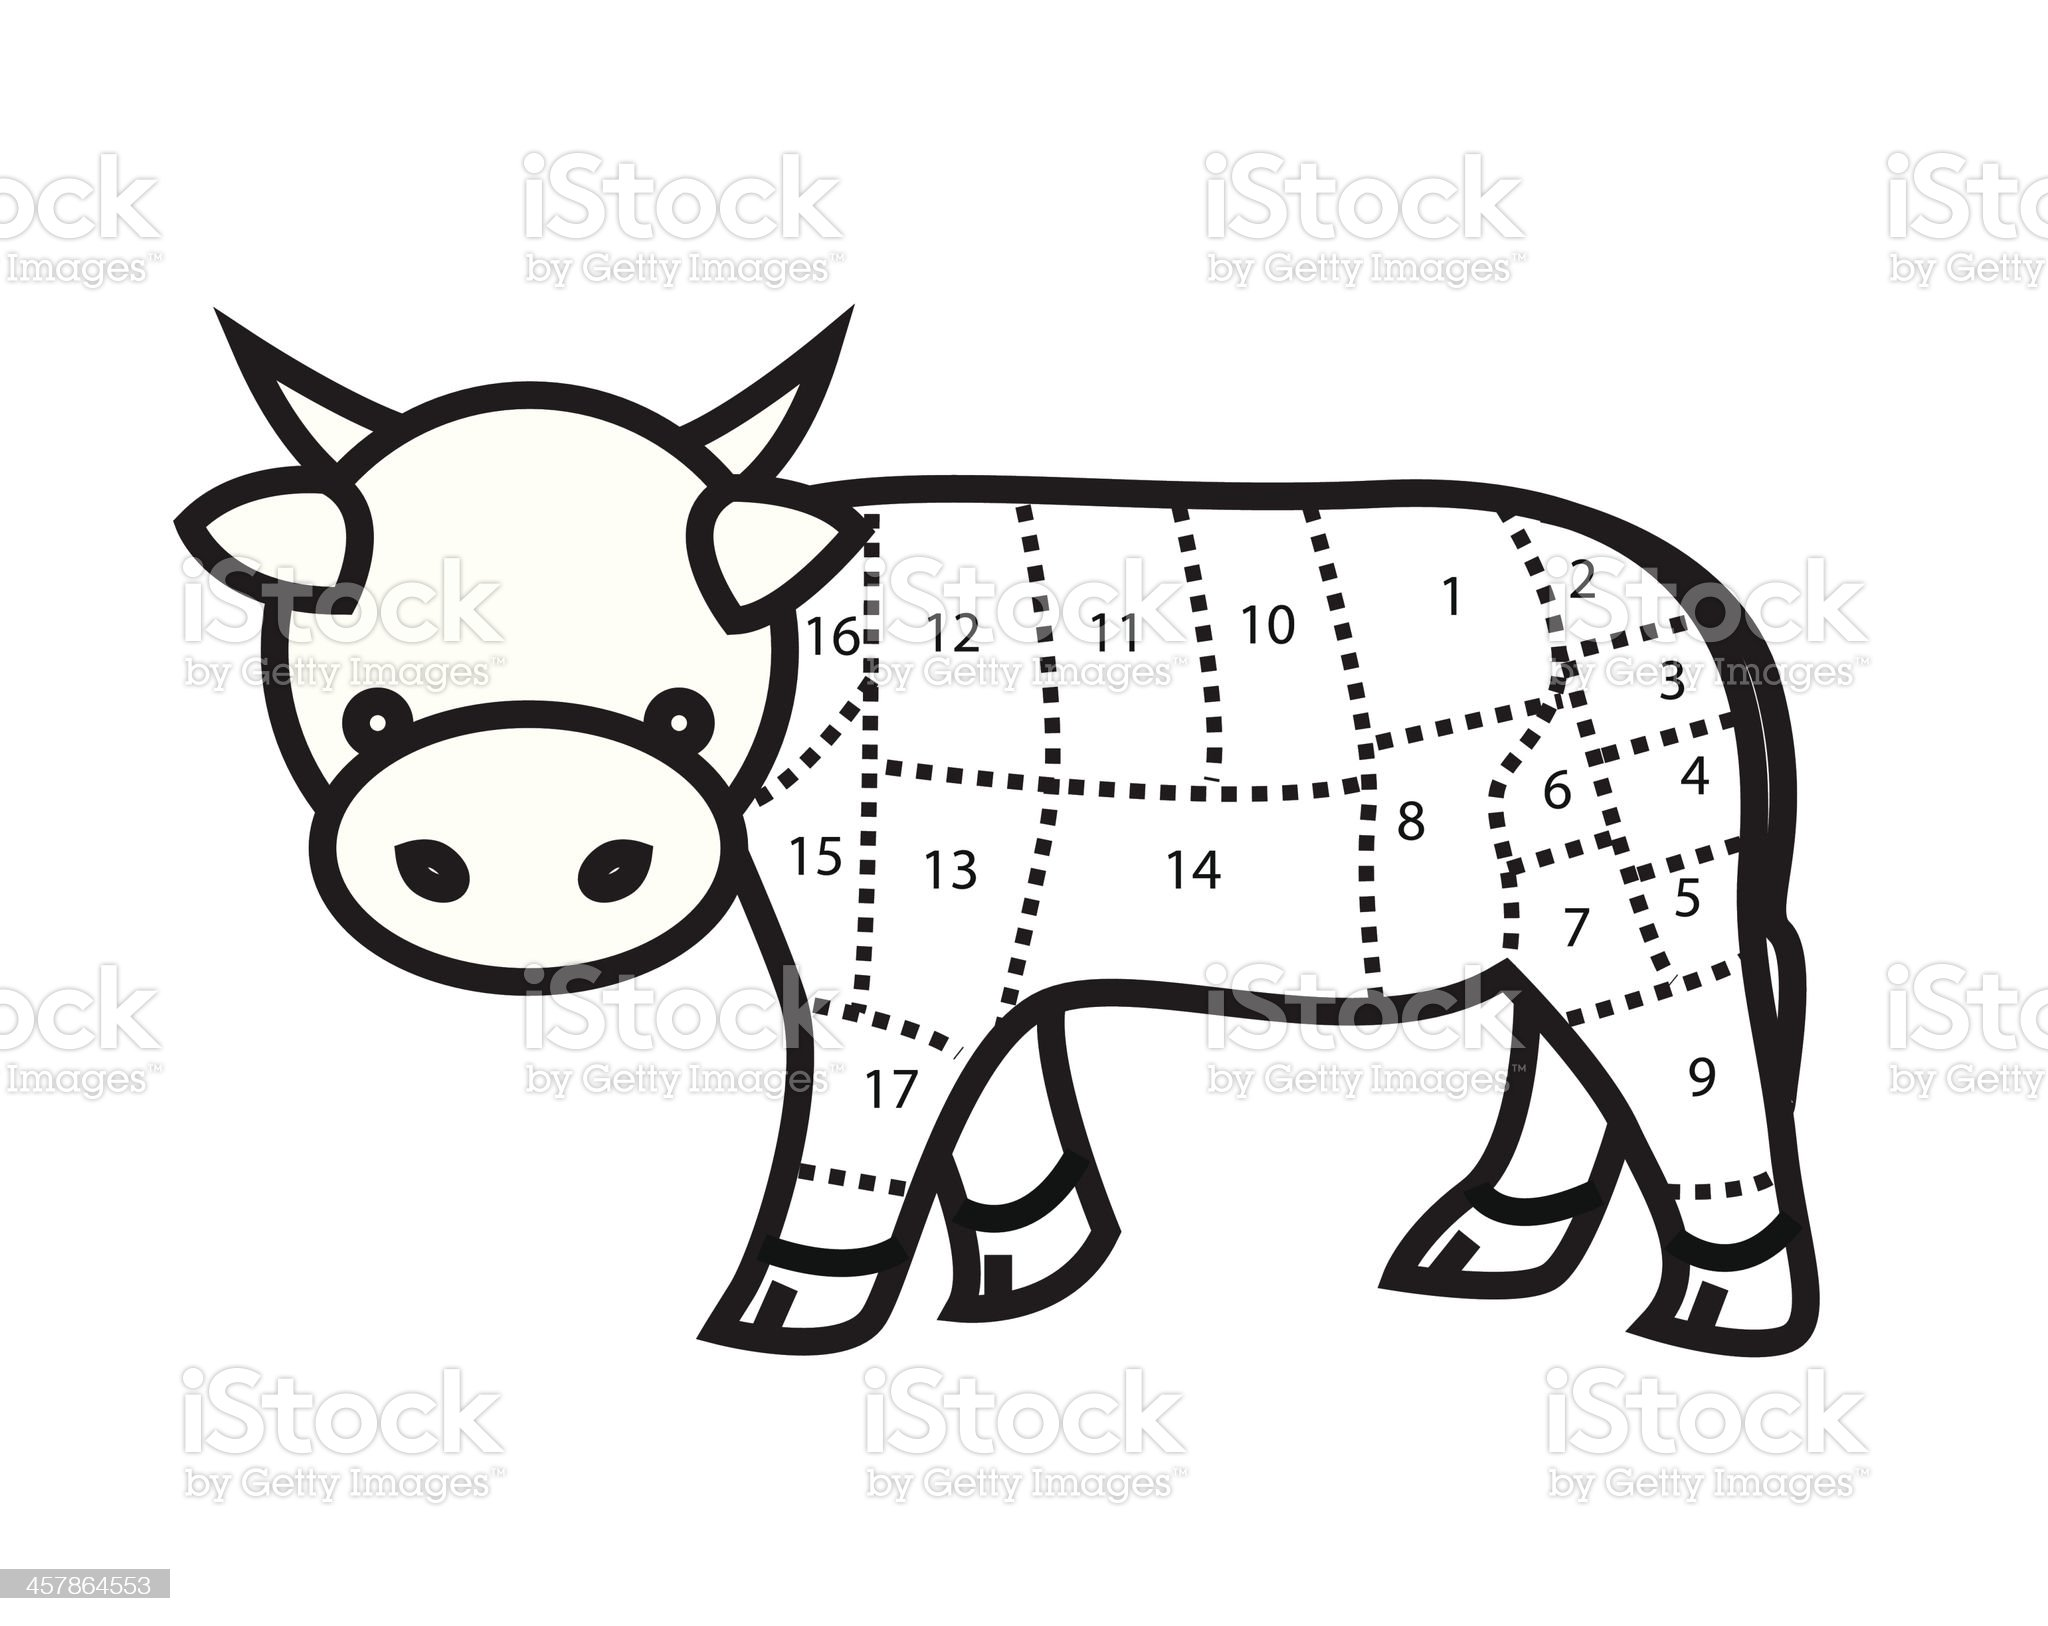 Beef Cuts Chart (cow) isolated on white background. vector royalty-free stock vector art